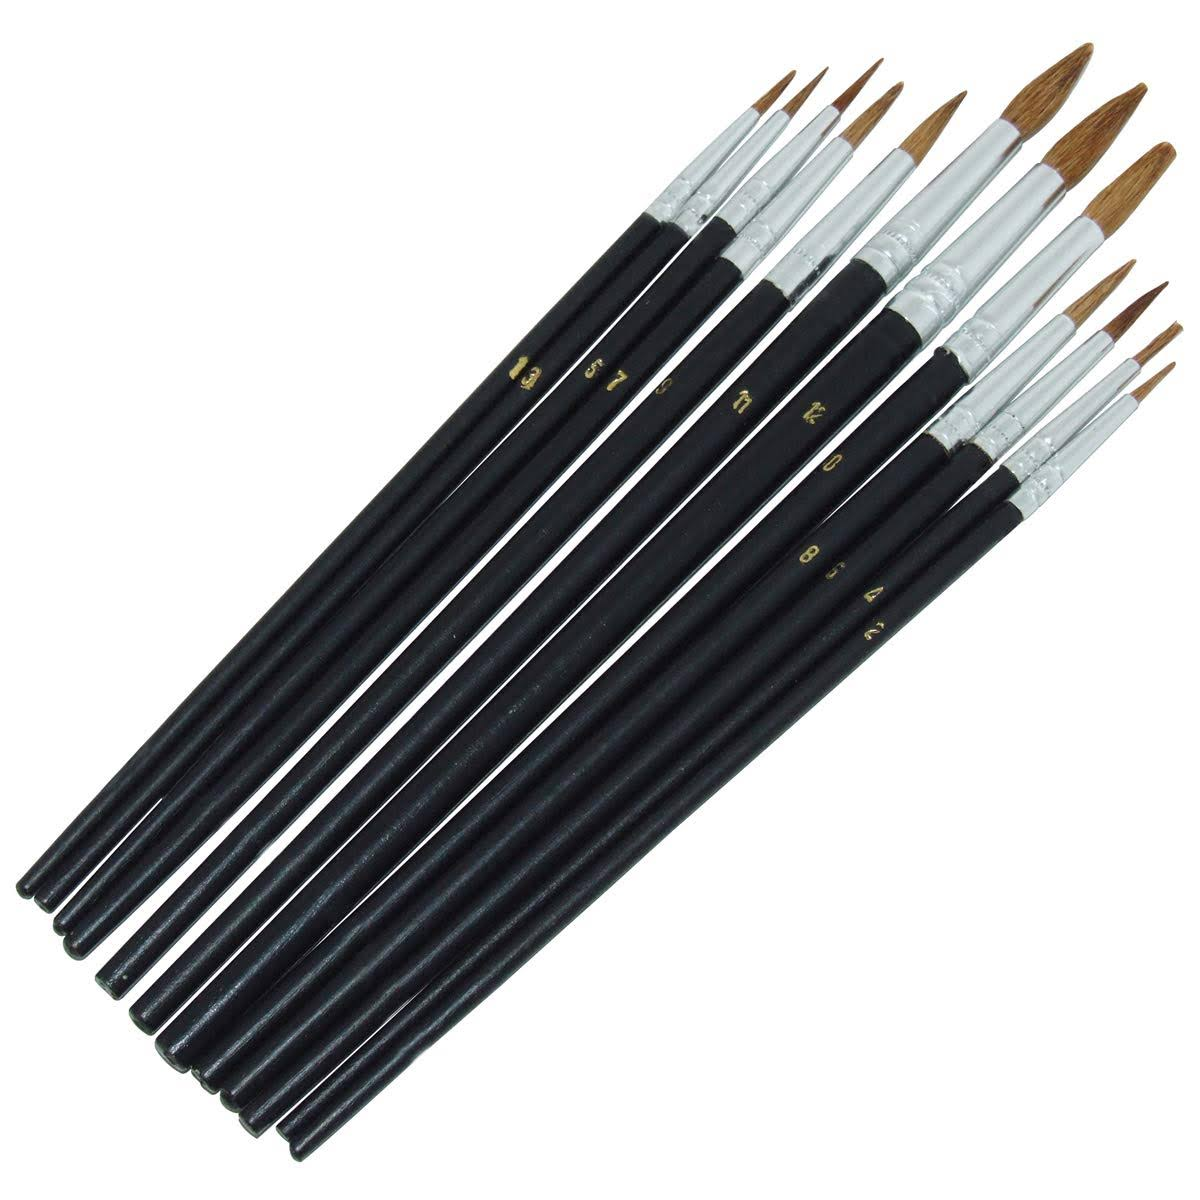 Amtech 12pc Pointed Tip Art Brush Set